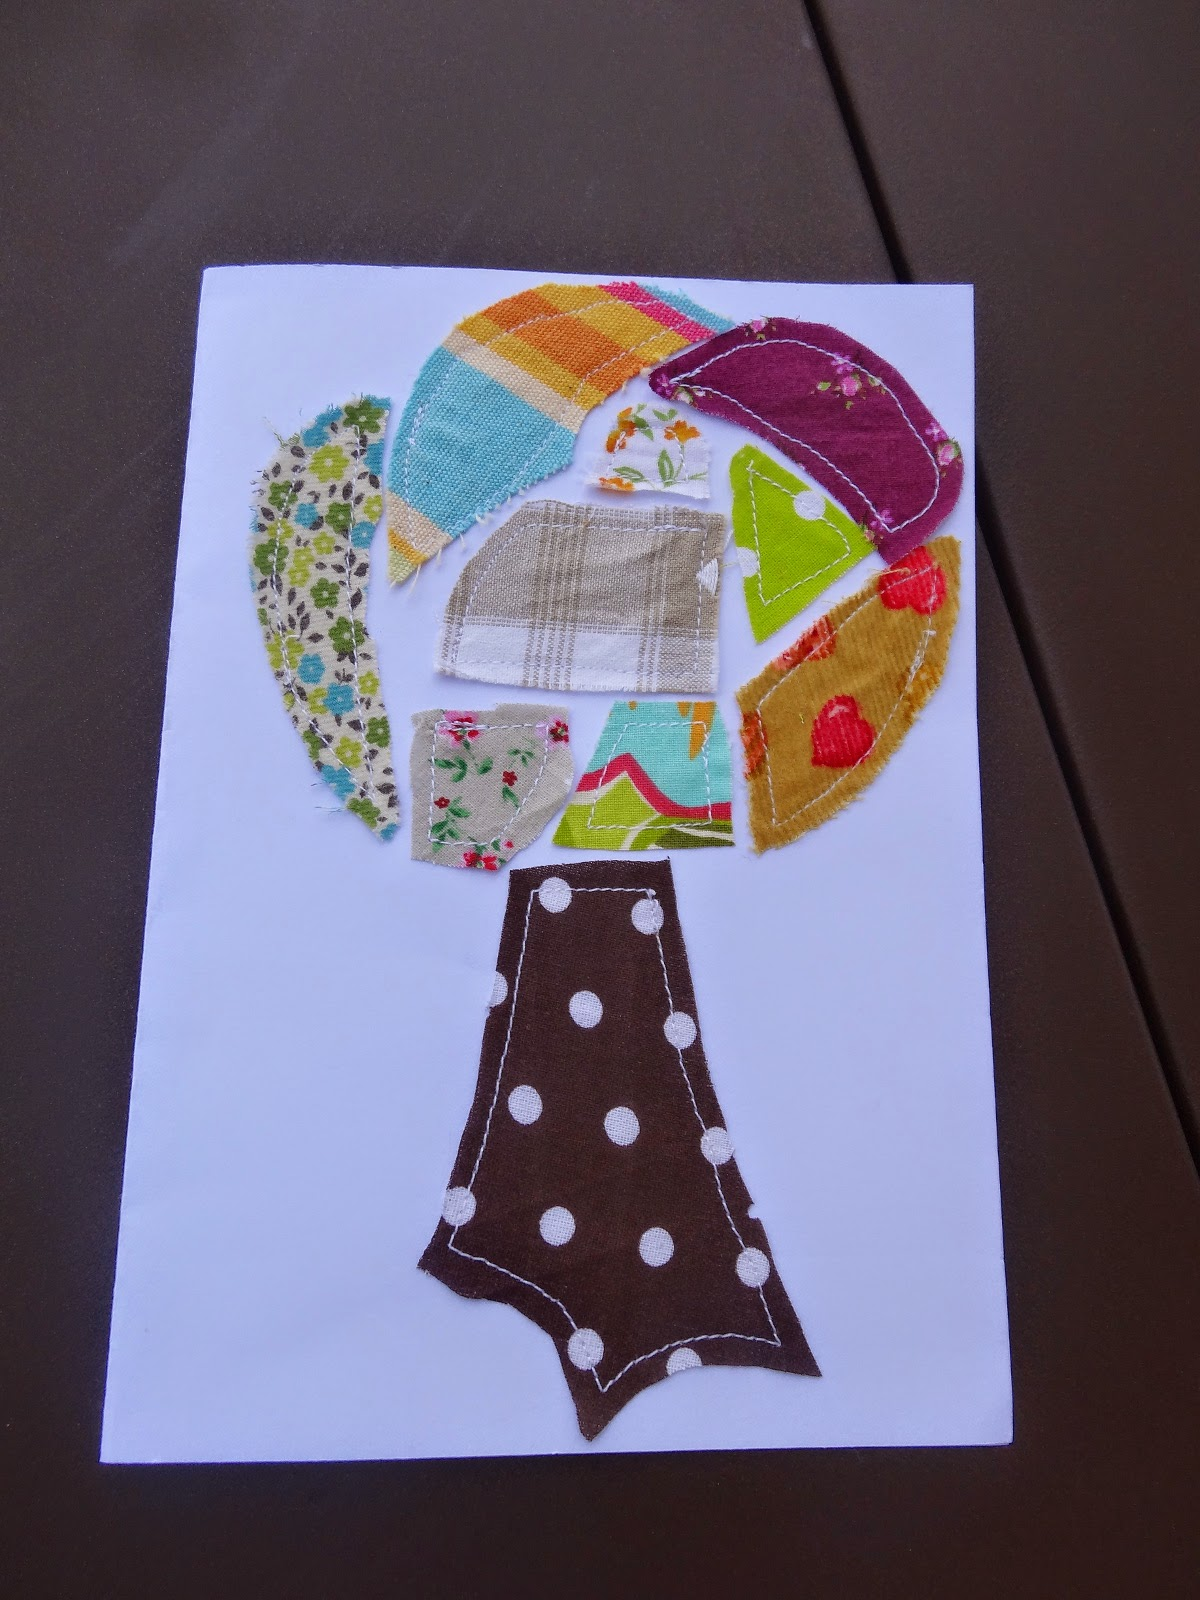 carte patchwork cousue arbre papier